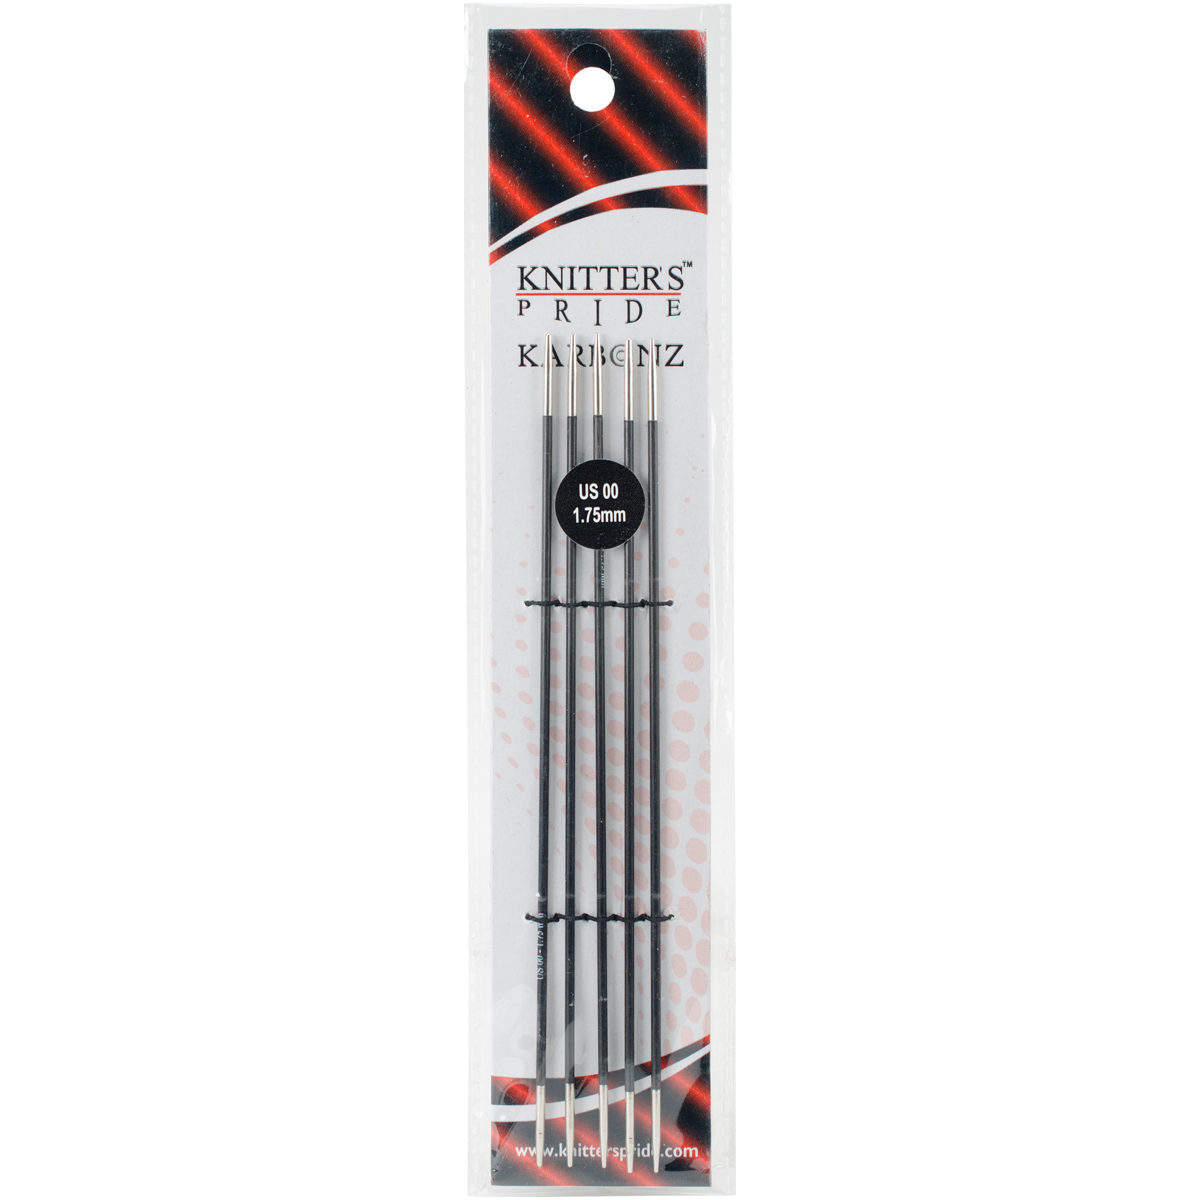 Knitter's Pride-Karbonz Double Pointed Needles 6-Size 00/1.75mm